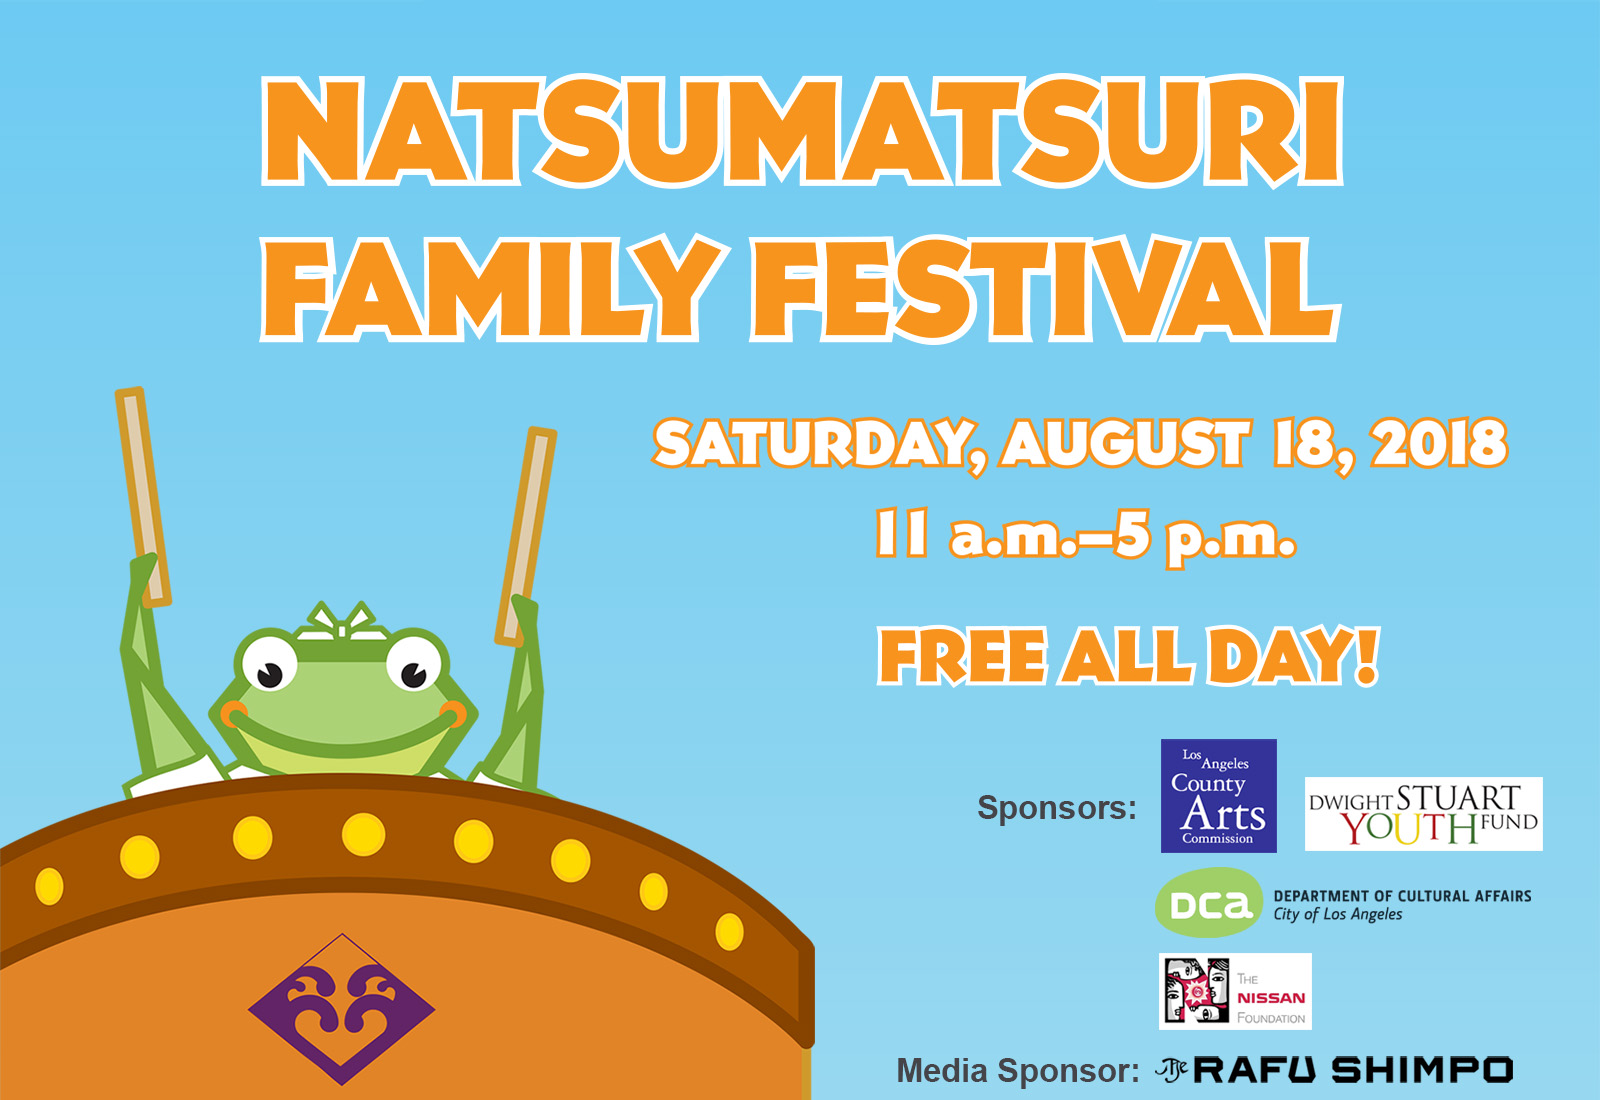 Natsumatsuri Family Festival on Saturday, August 18, 2018, 11 a.m. to 5 p.m. FREE ALL DAY! Sponsors: Los Angeles County Arts Commission; Department of Cultural Affairs, City of Los Angeles; Nissan Foundation. Media Sponsor: The Rafu Shimpo